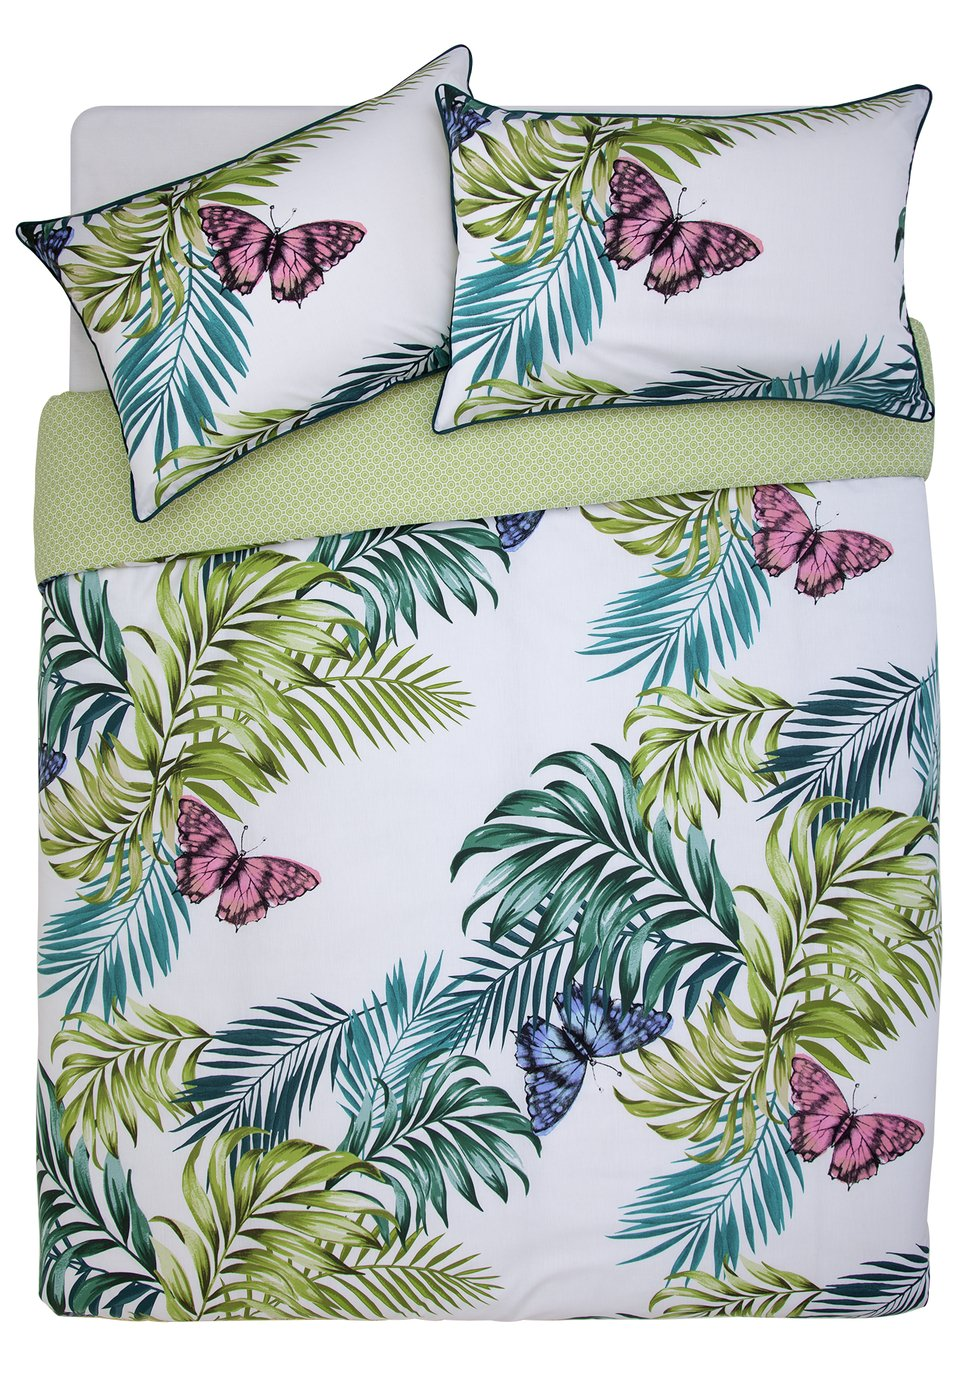 Argos Home Palmhouse Leaf Butterfly Bedding Set - Double